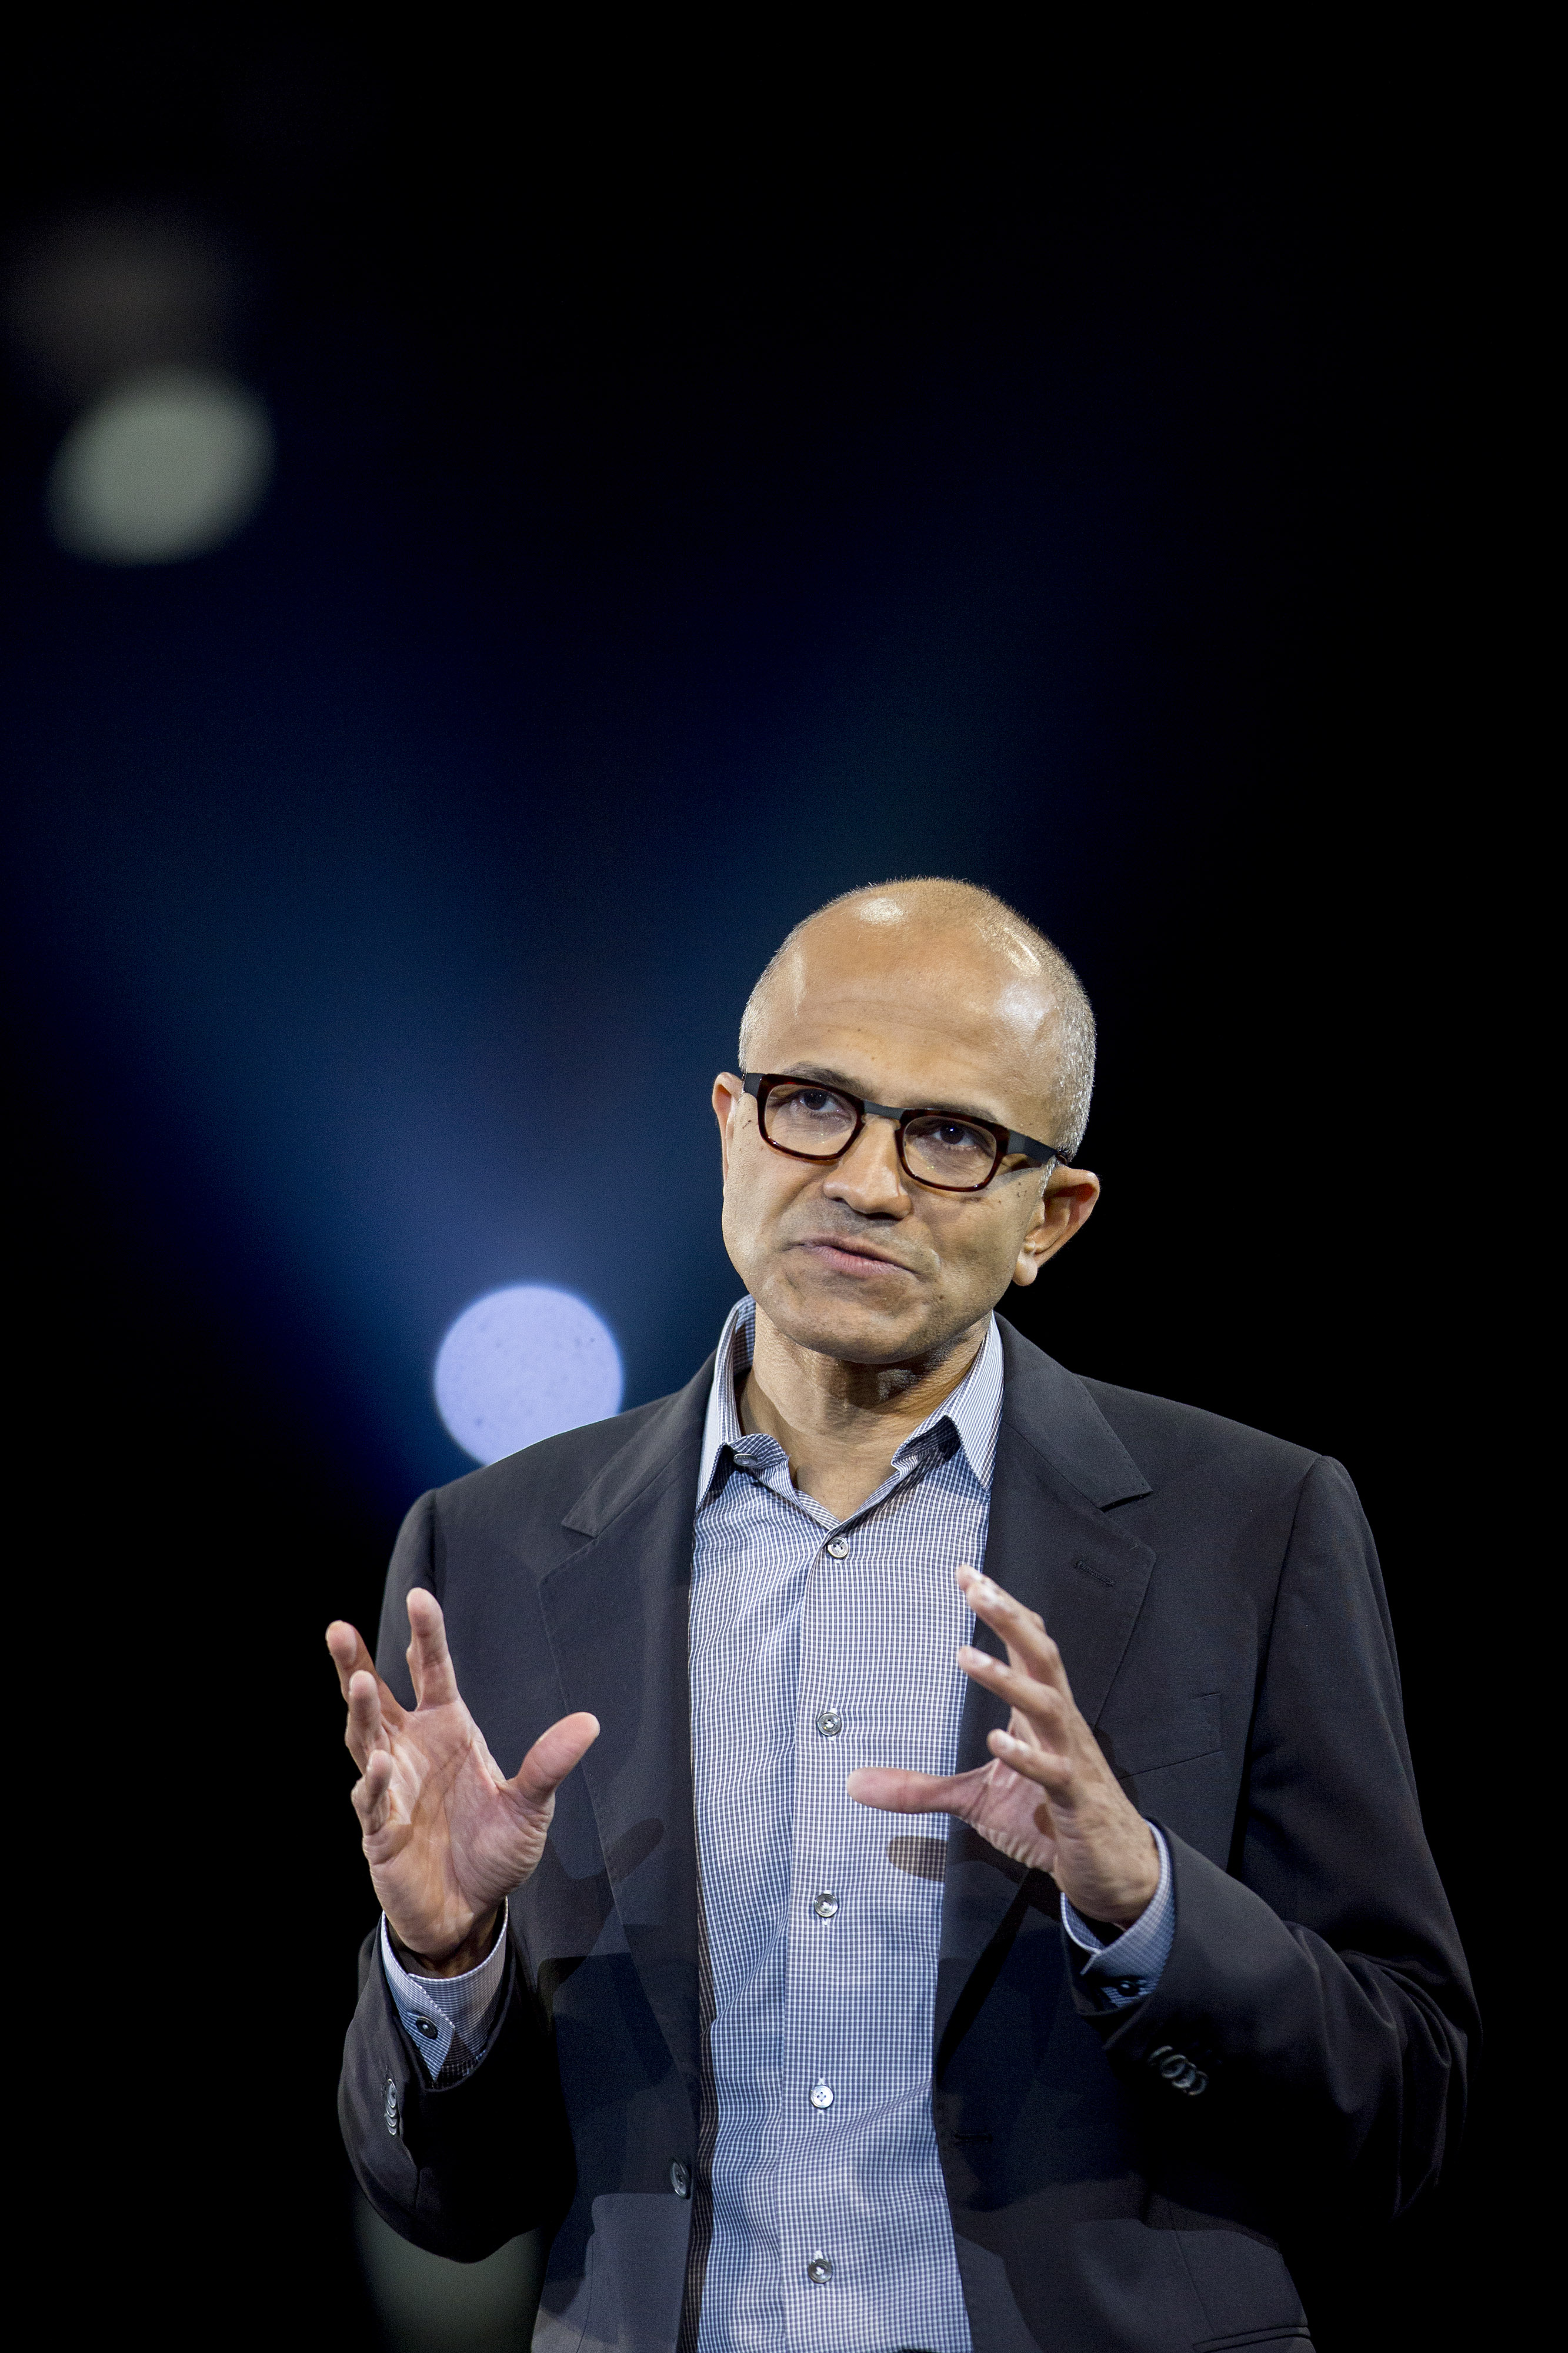 Satya Nadella, chief executive officer of Microsoft Corp., speaks during a keynote session at the Microsoft Worldwide Partner Conference in Washington on July 16, 2014.